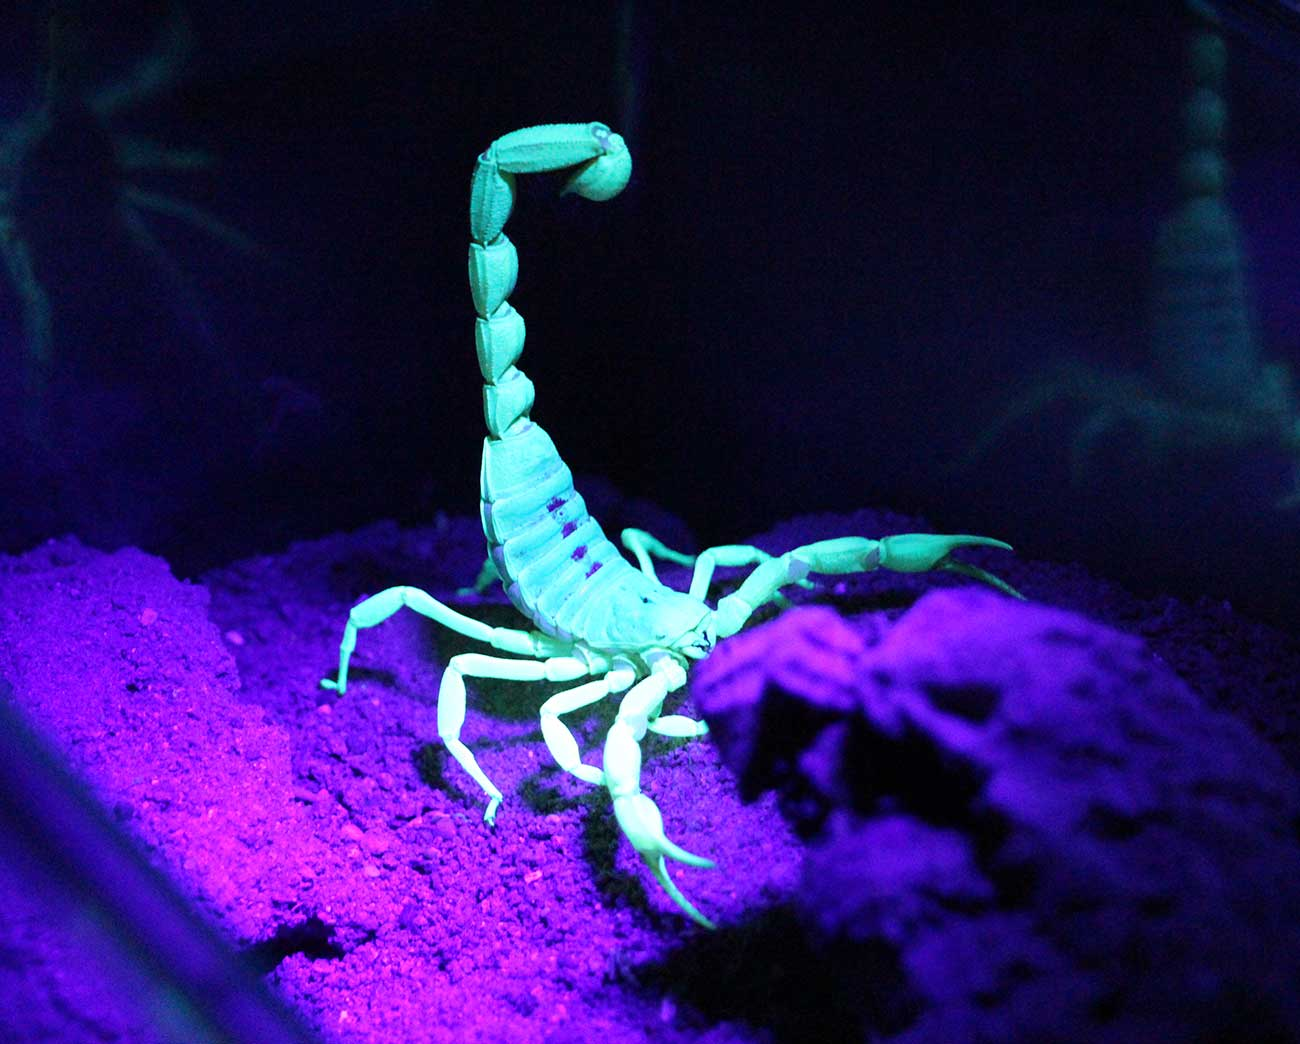 Desert hairy scorpion glows under UV light